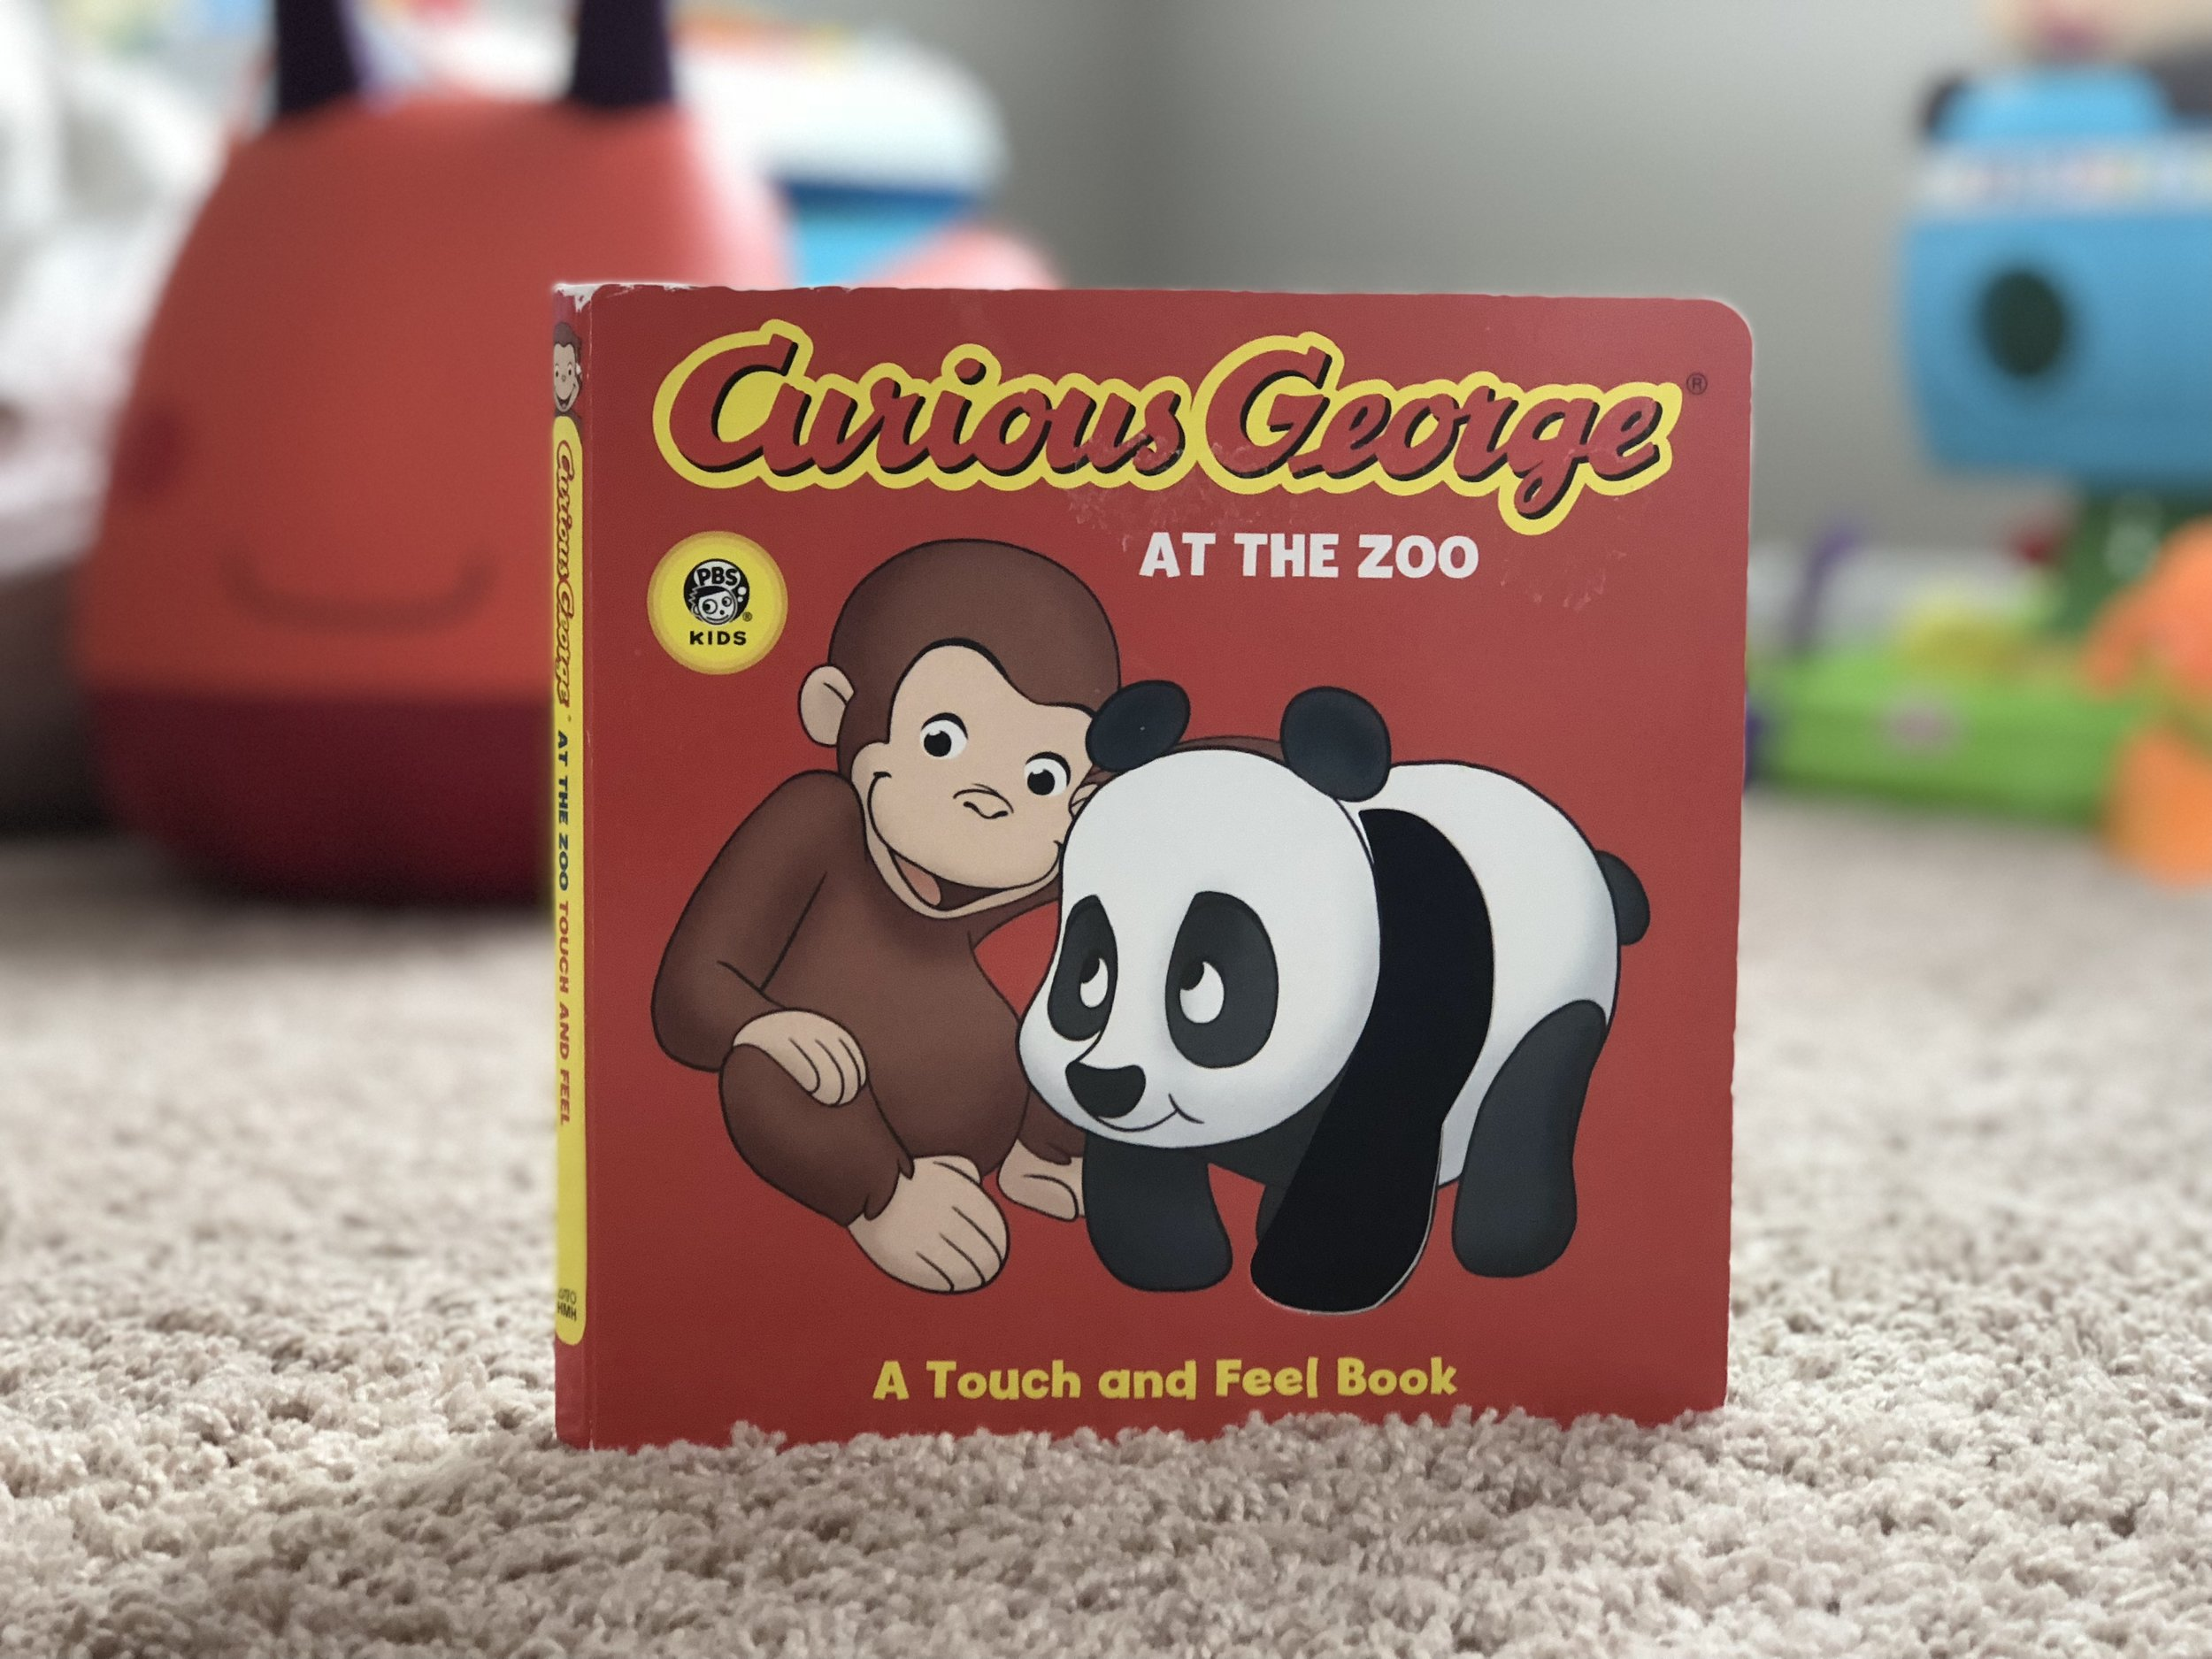 Curious George at The Zoo a Touch and Feel Book